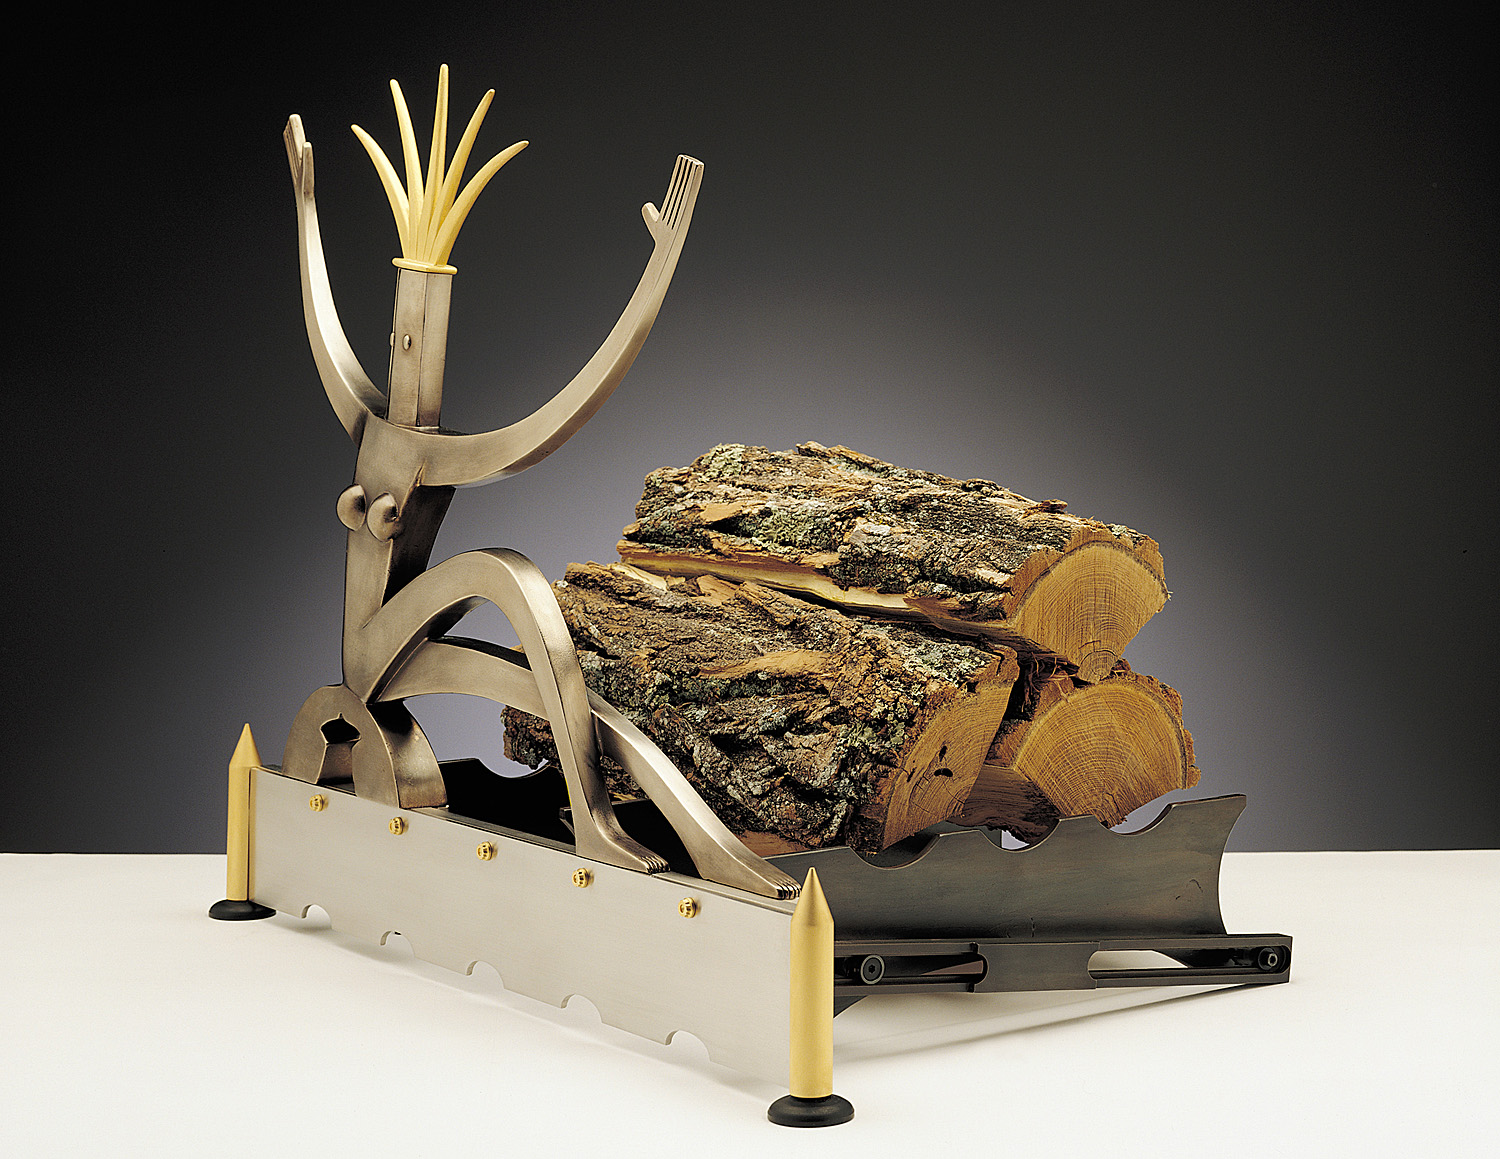 """Fireplace Figure   1999. Cast bronze, stainless steel, gold-plated bronze. 25 x 31 x 20"""""""